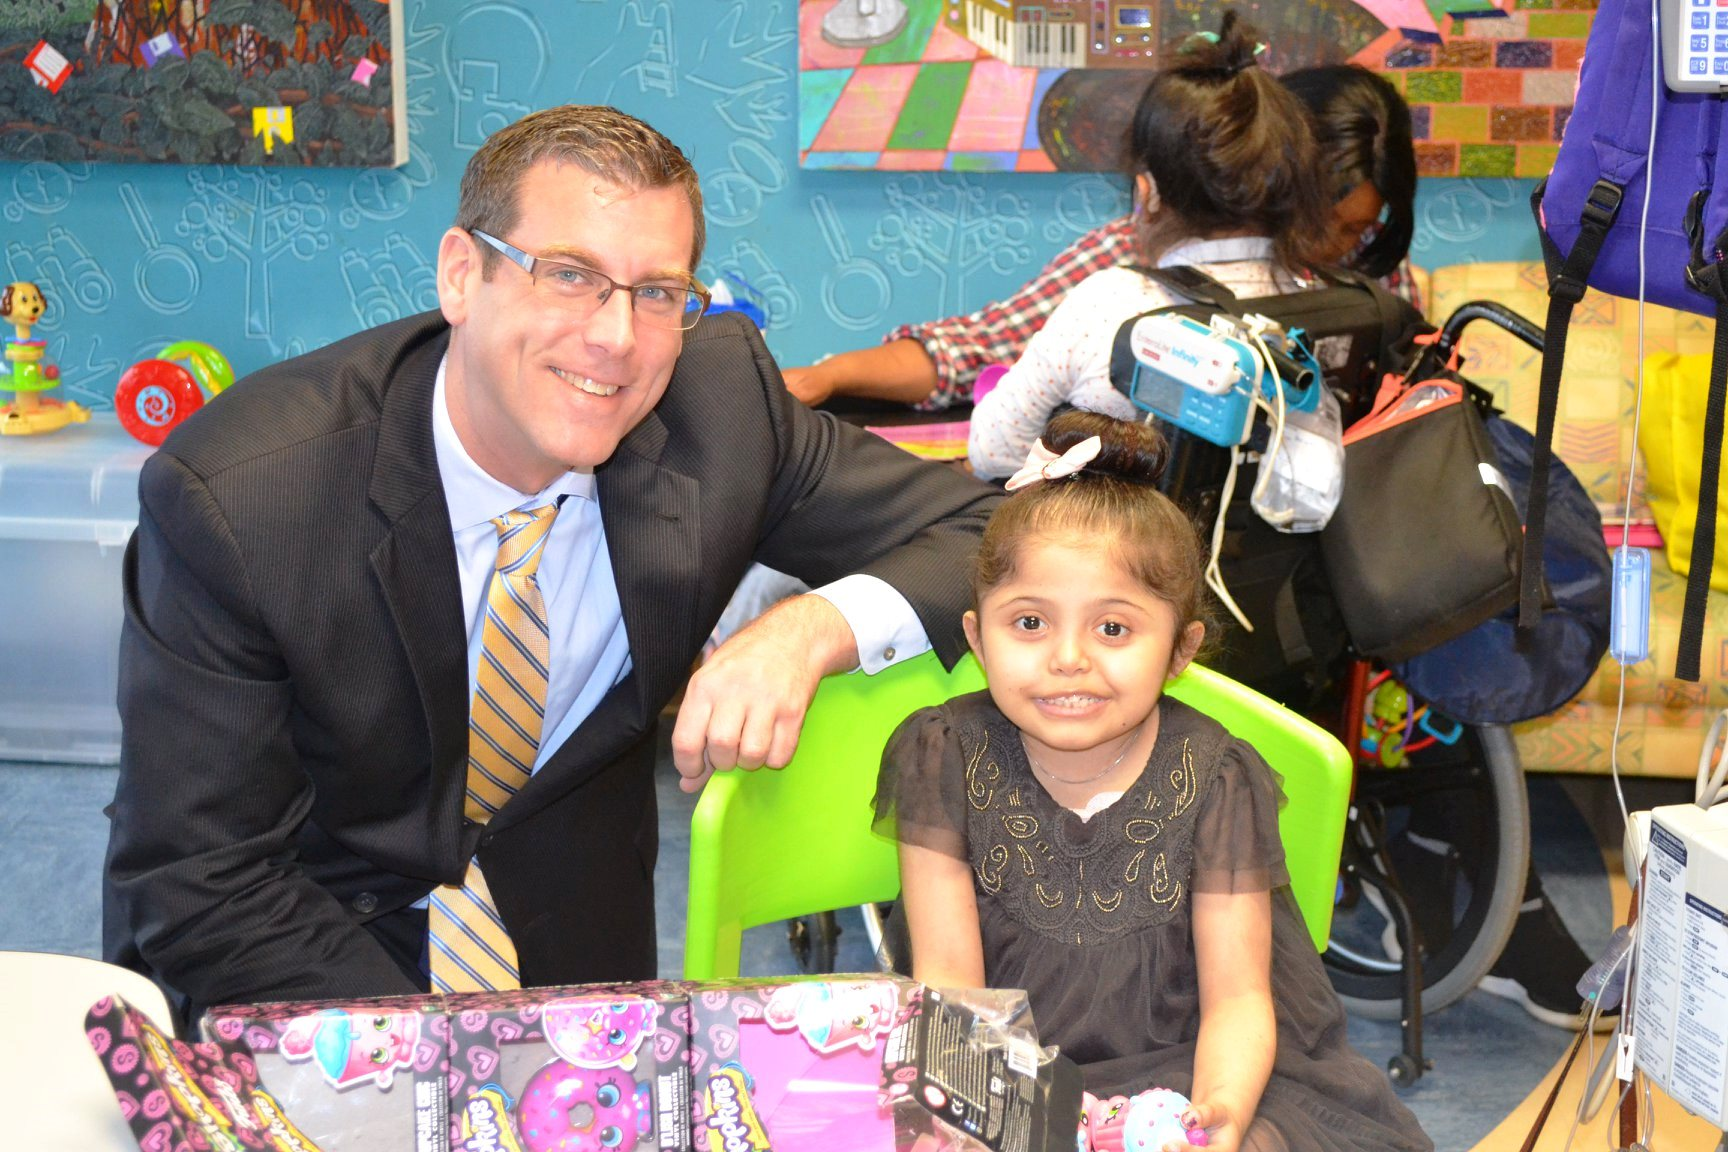 On December 21, 2018, Assemblyman Braunstein distributed toys from his office's 8th Annual Holiday Gift Drive to children at St. Mary's Hospital for Children.